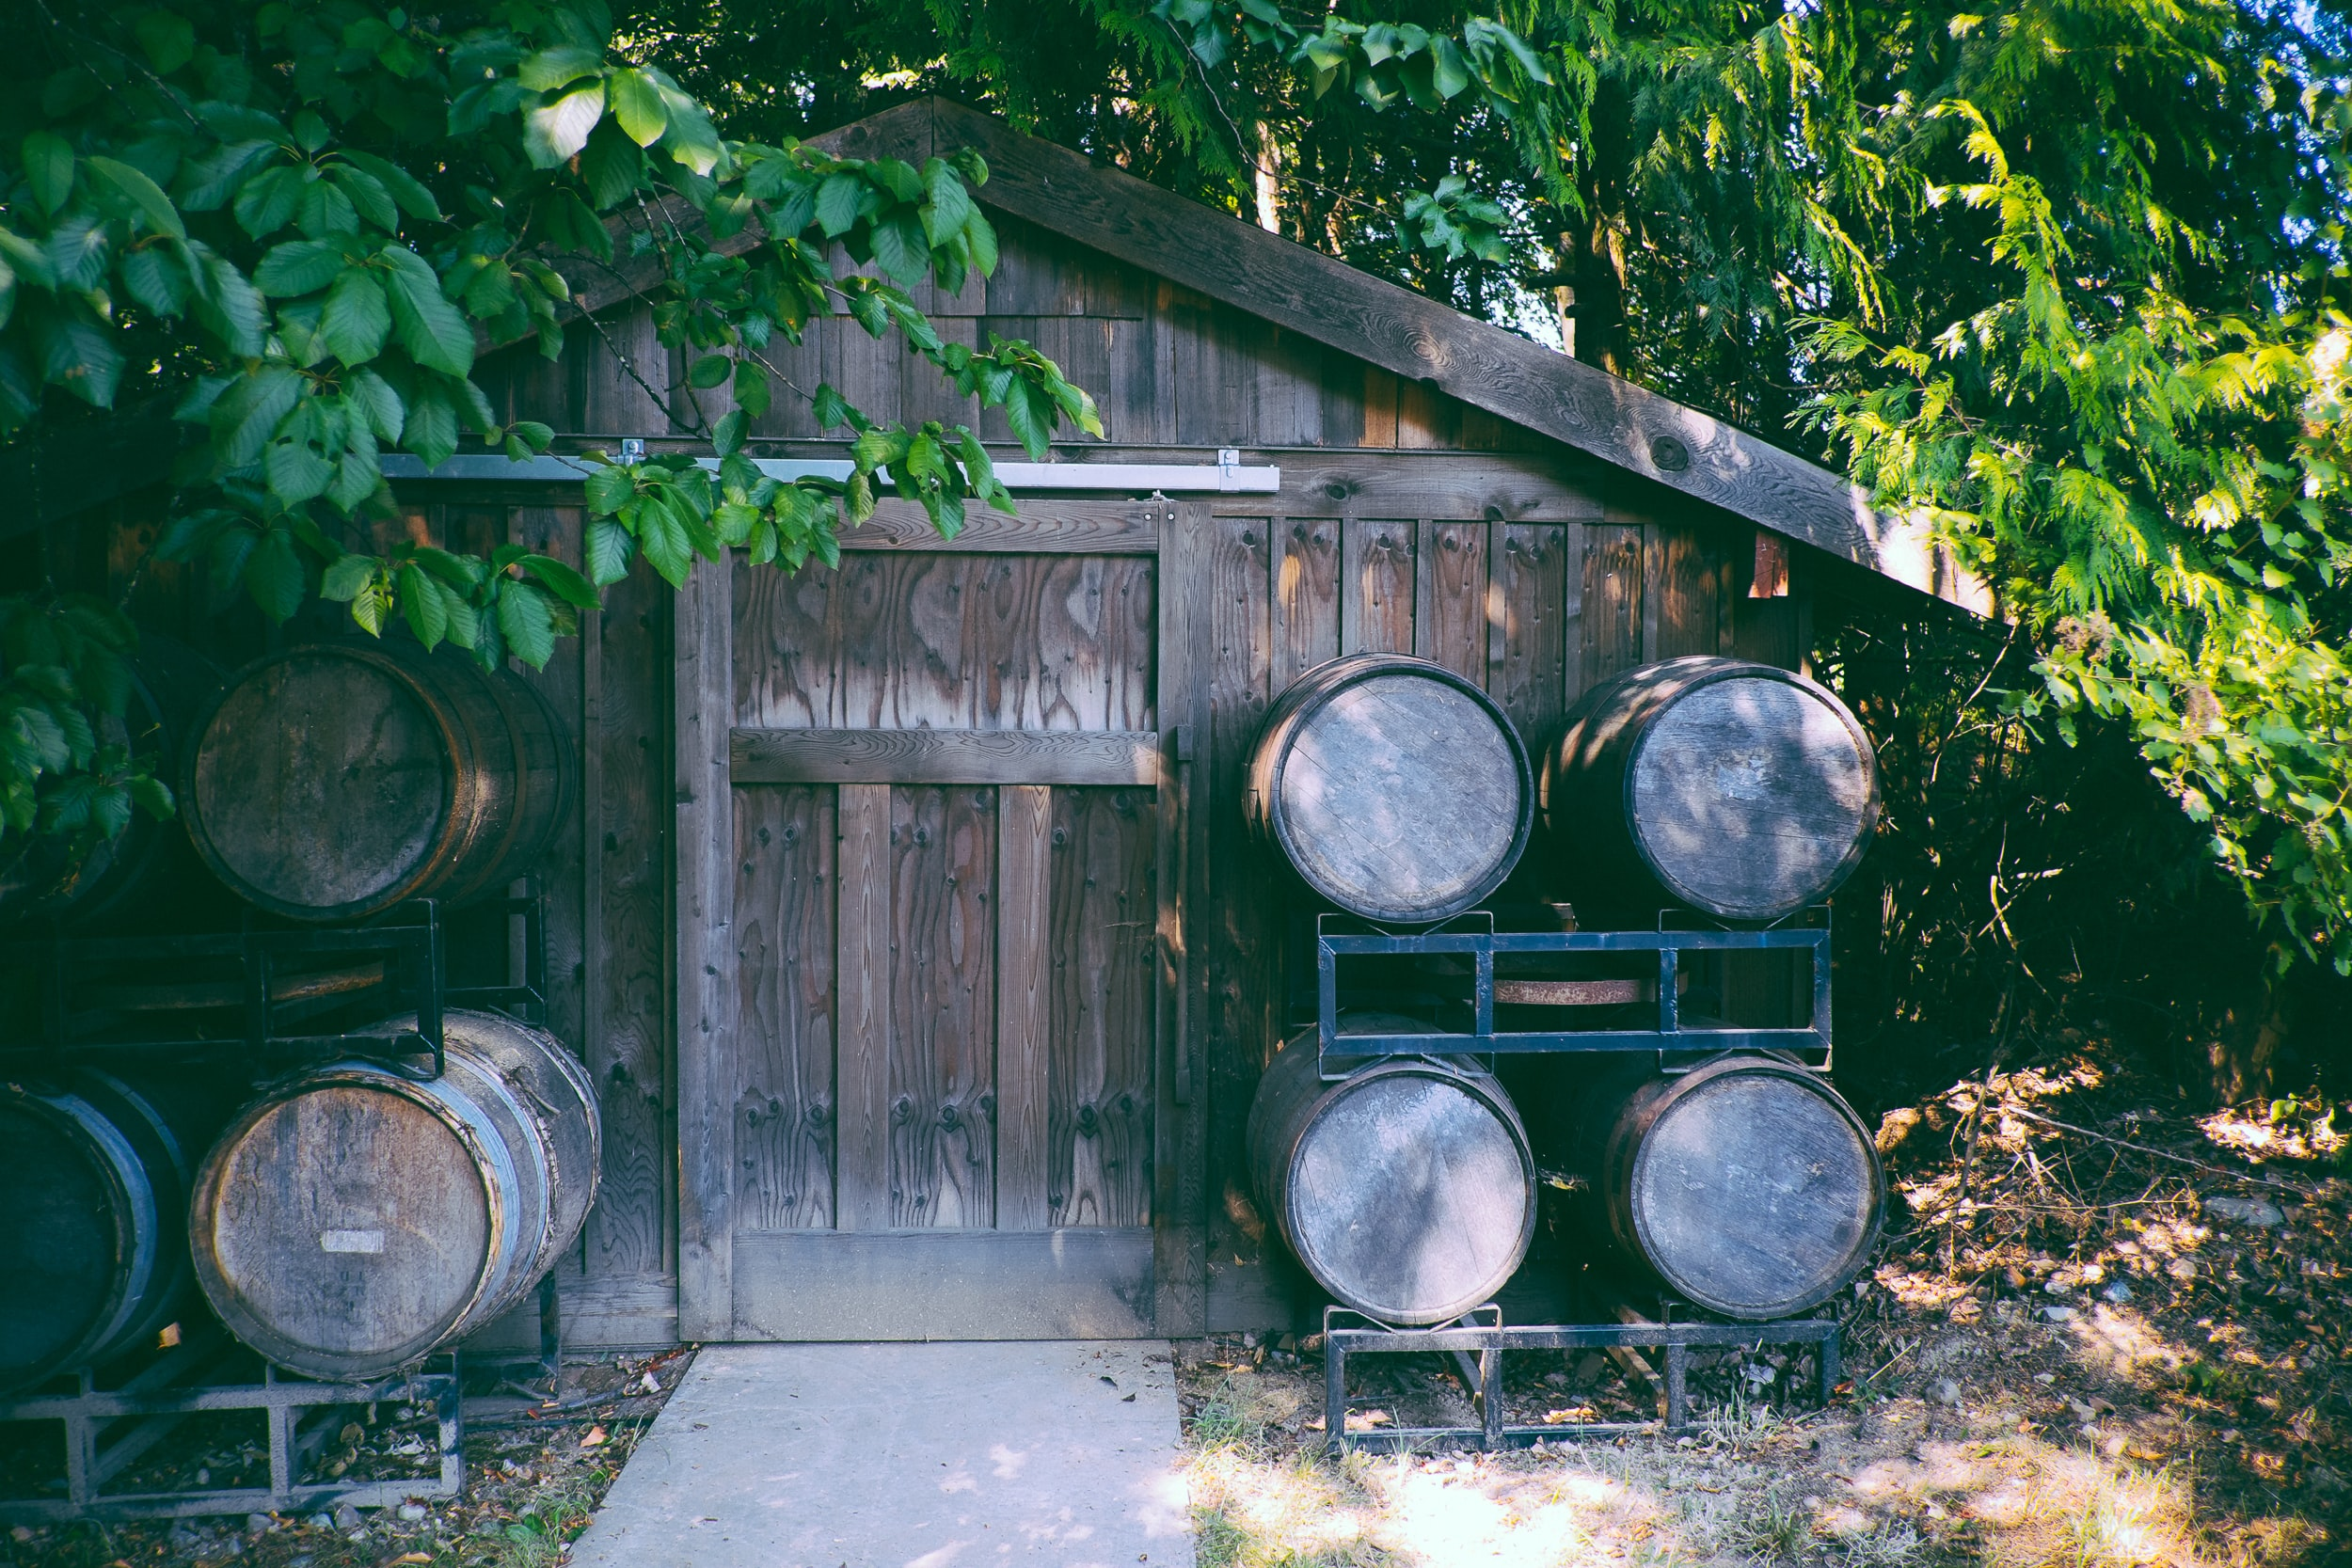 photo of barrels beside house